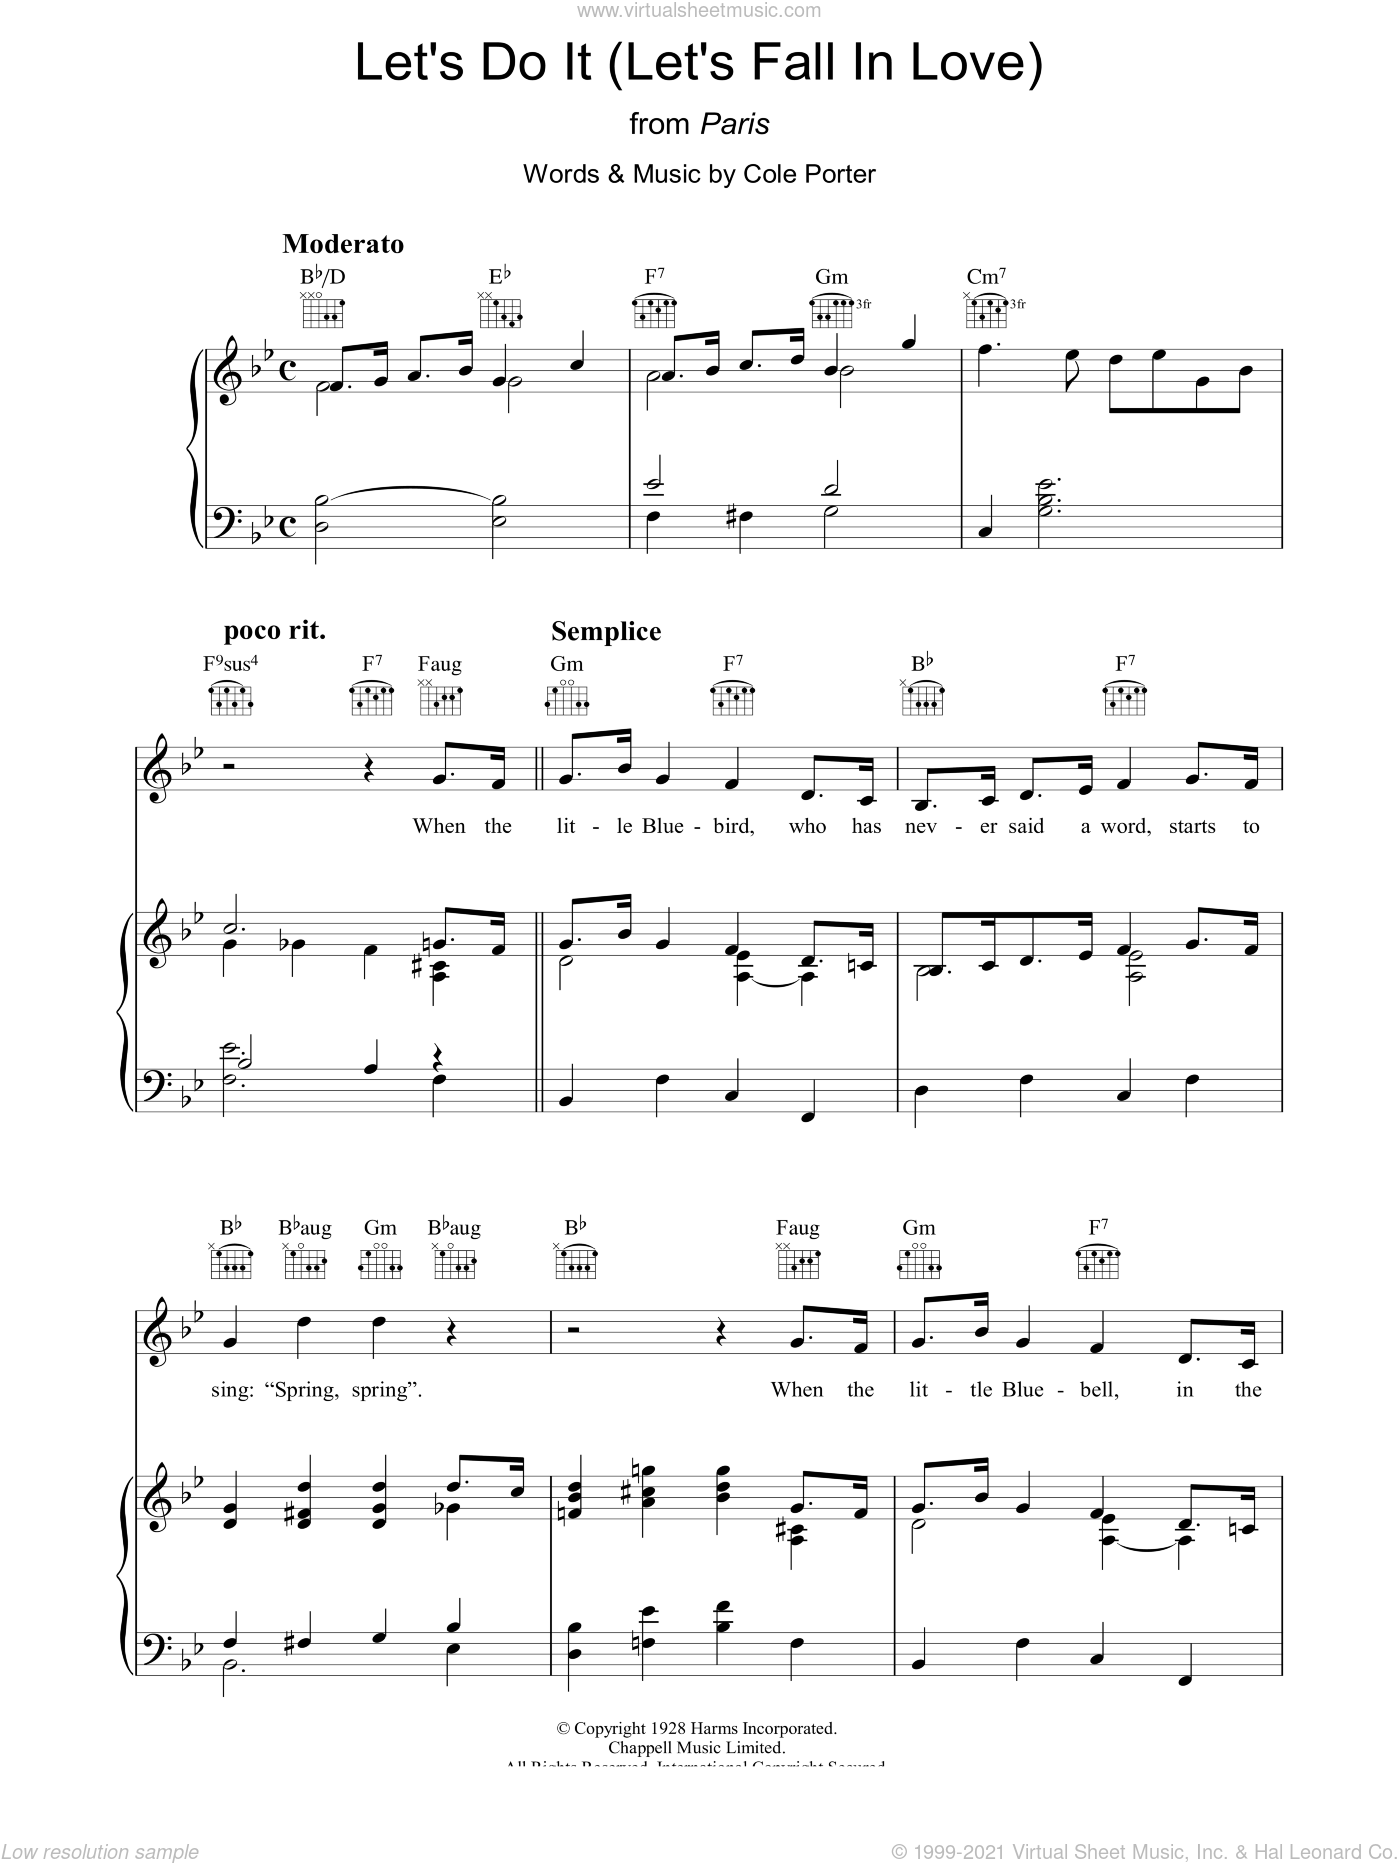 Let's Do It (Let's Fall In Love) sheet music for voice, piano or guitar by Cole Porter, intermediate skill level